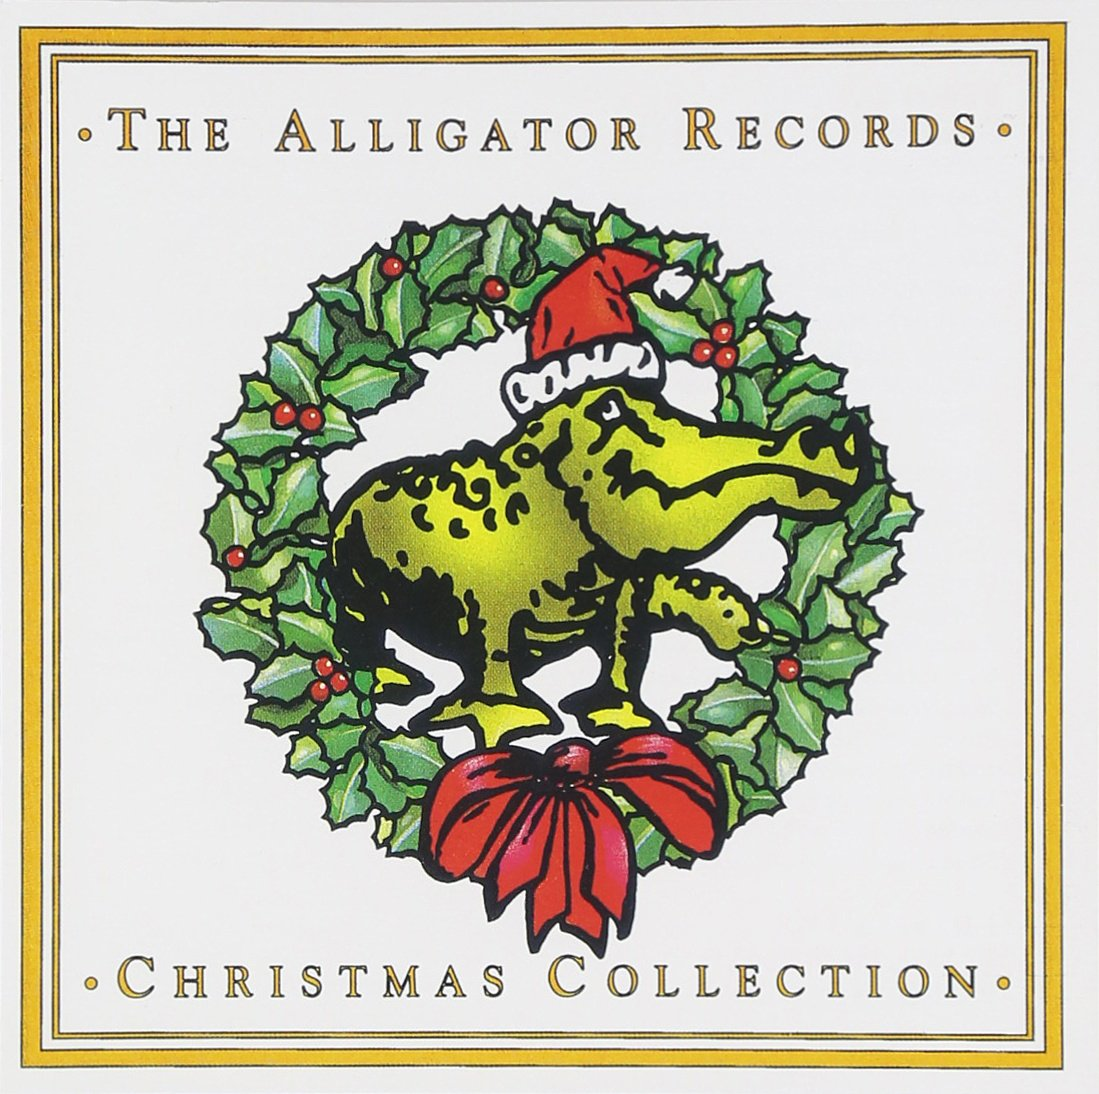 VARIOUS ARTISTS - The Alligator Records Christmas Collection ...